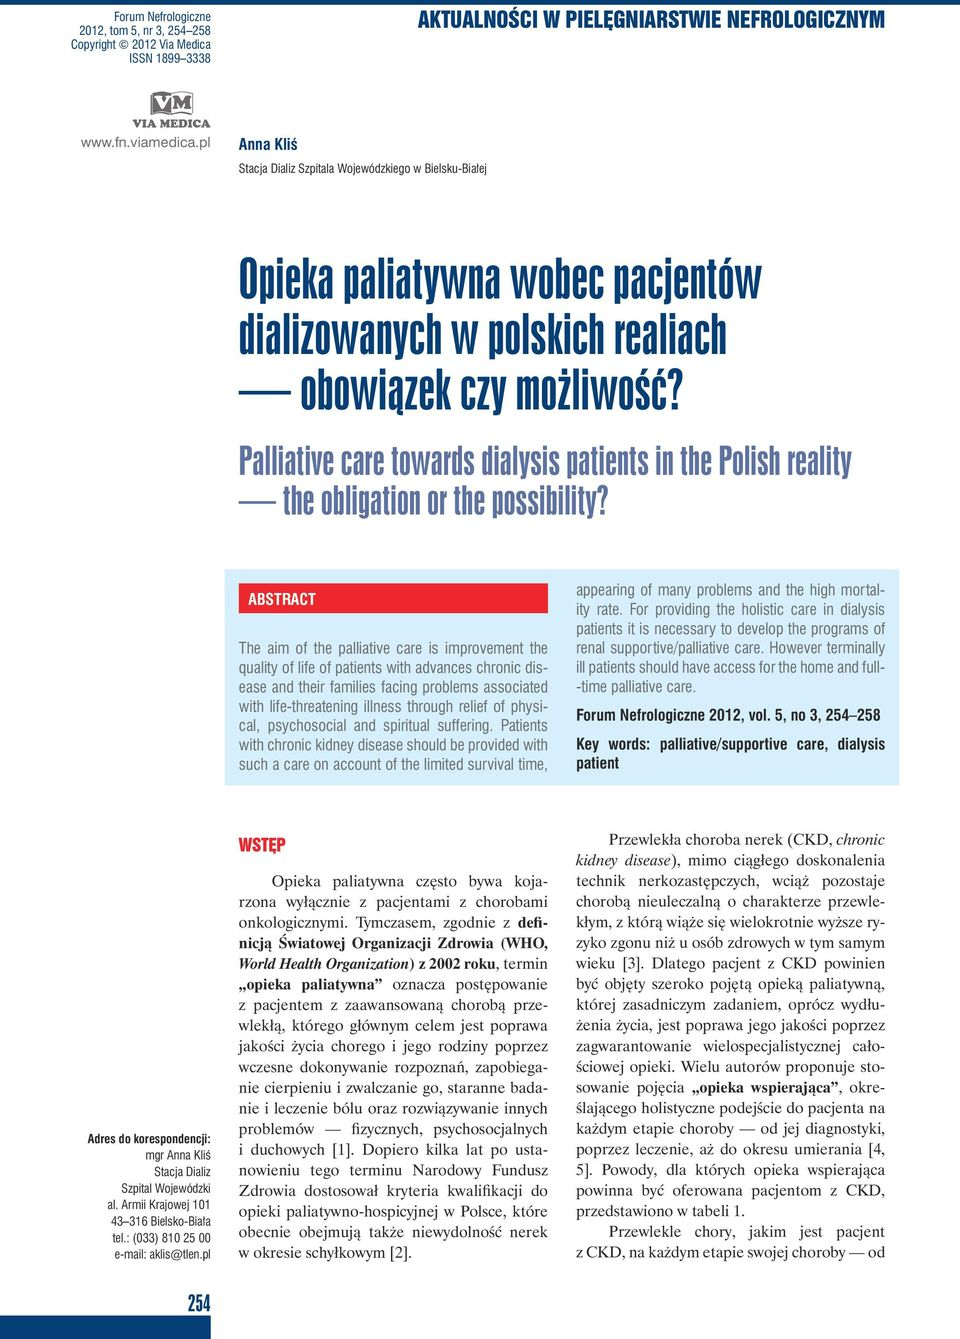 Palliative care towards dialysis patients in the Polish reality the obligation or the possibility?